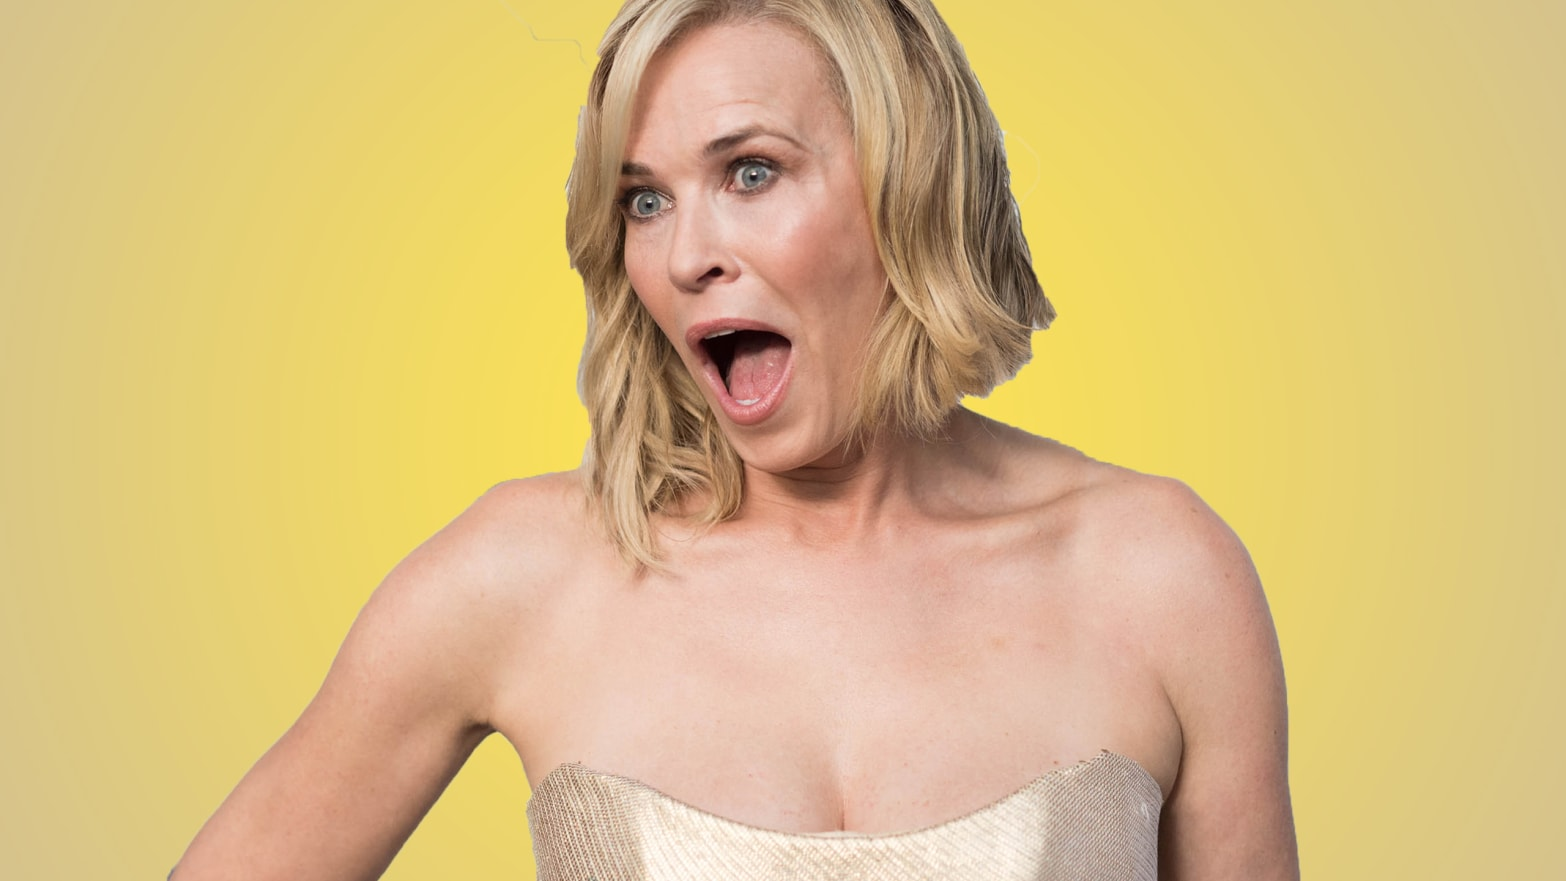 Chelsea Handler S Twitter Feed Has Officially Gone Off The Rails